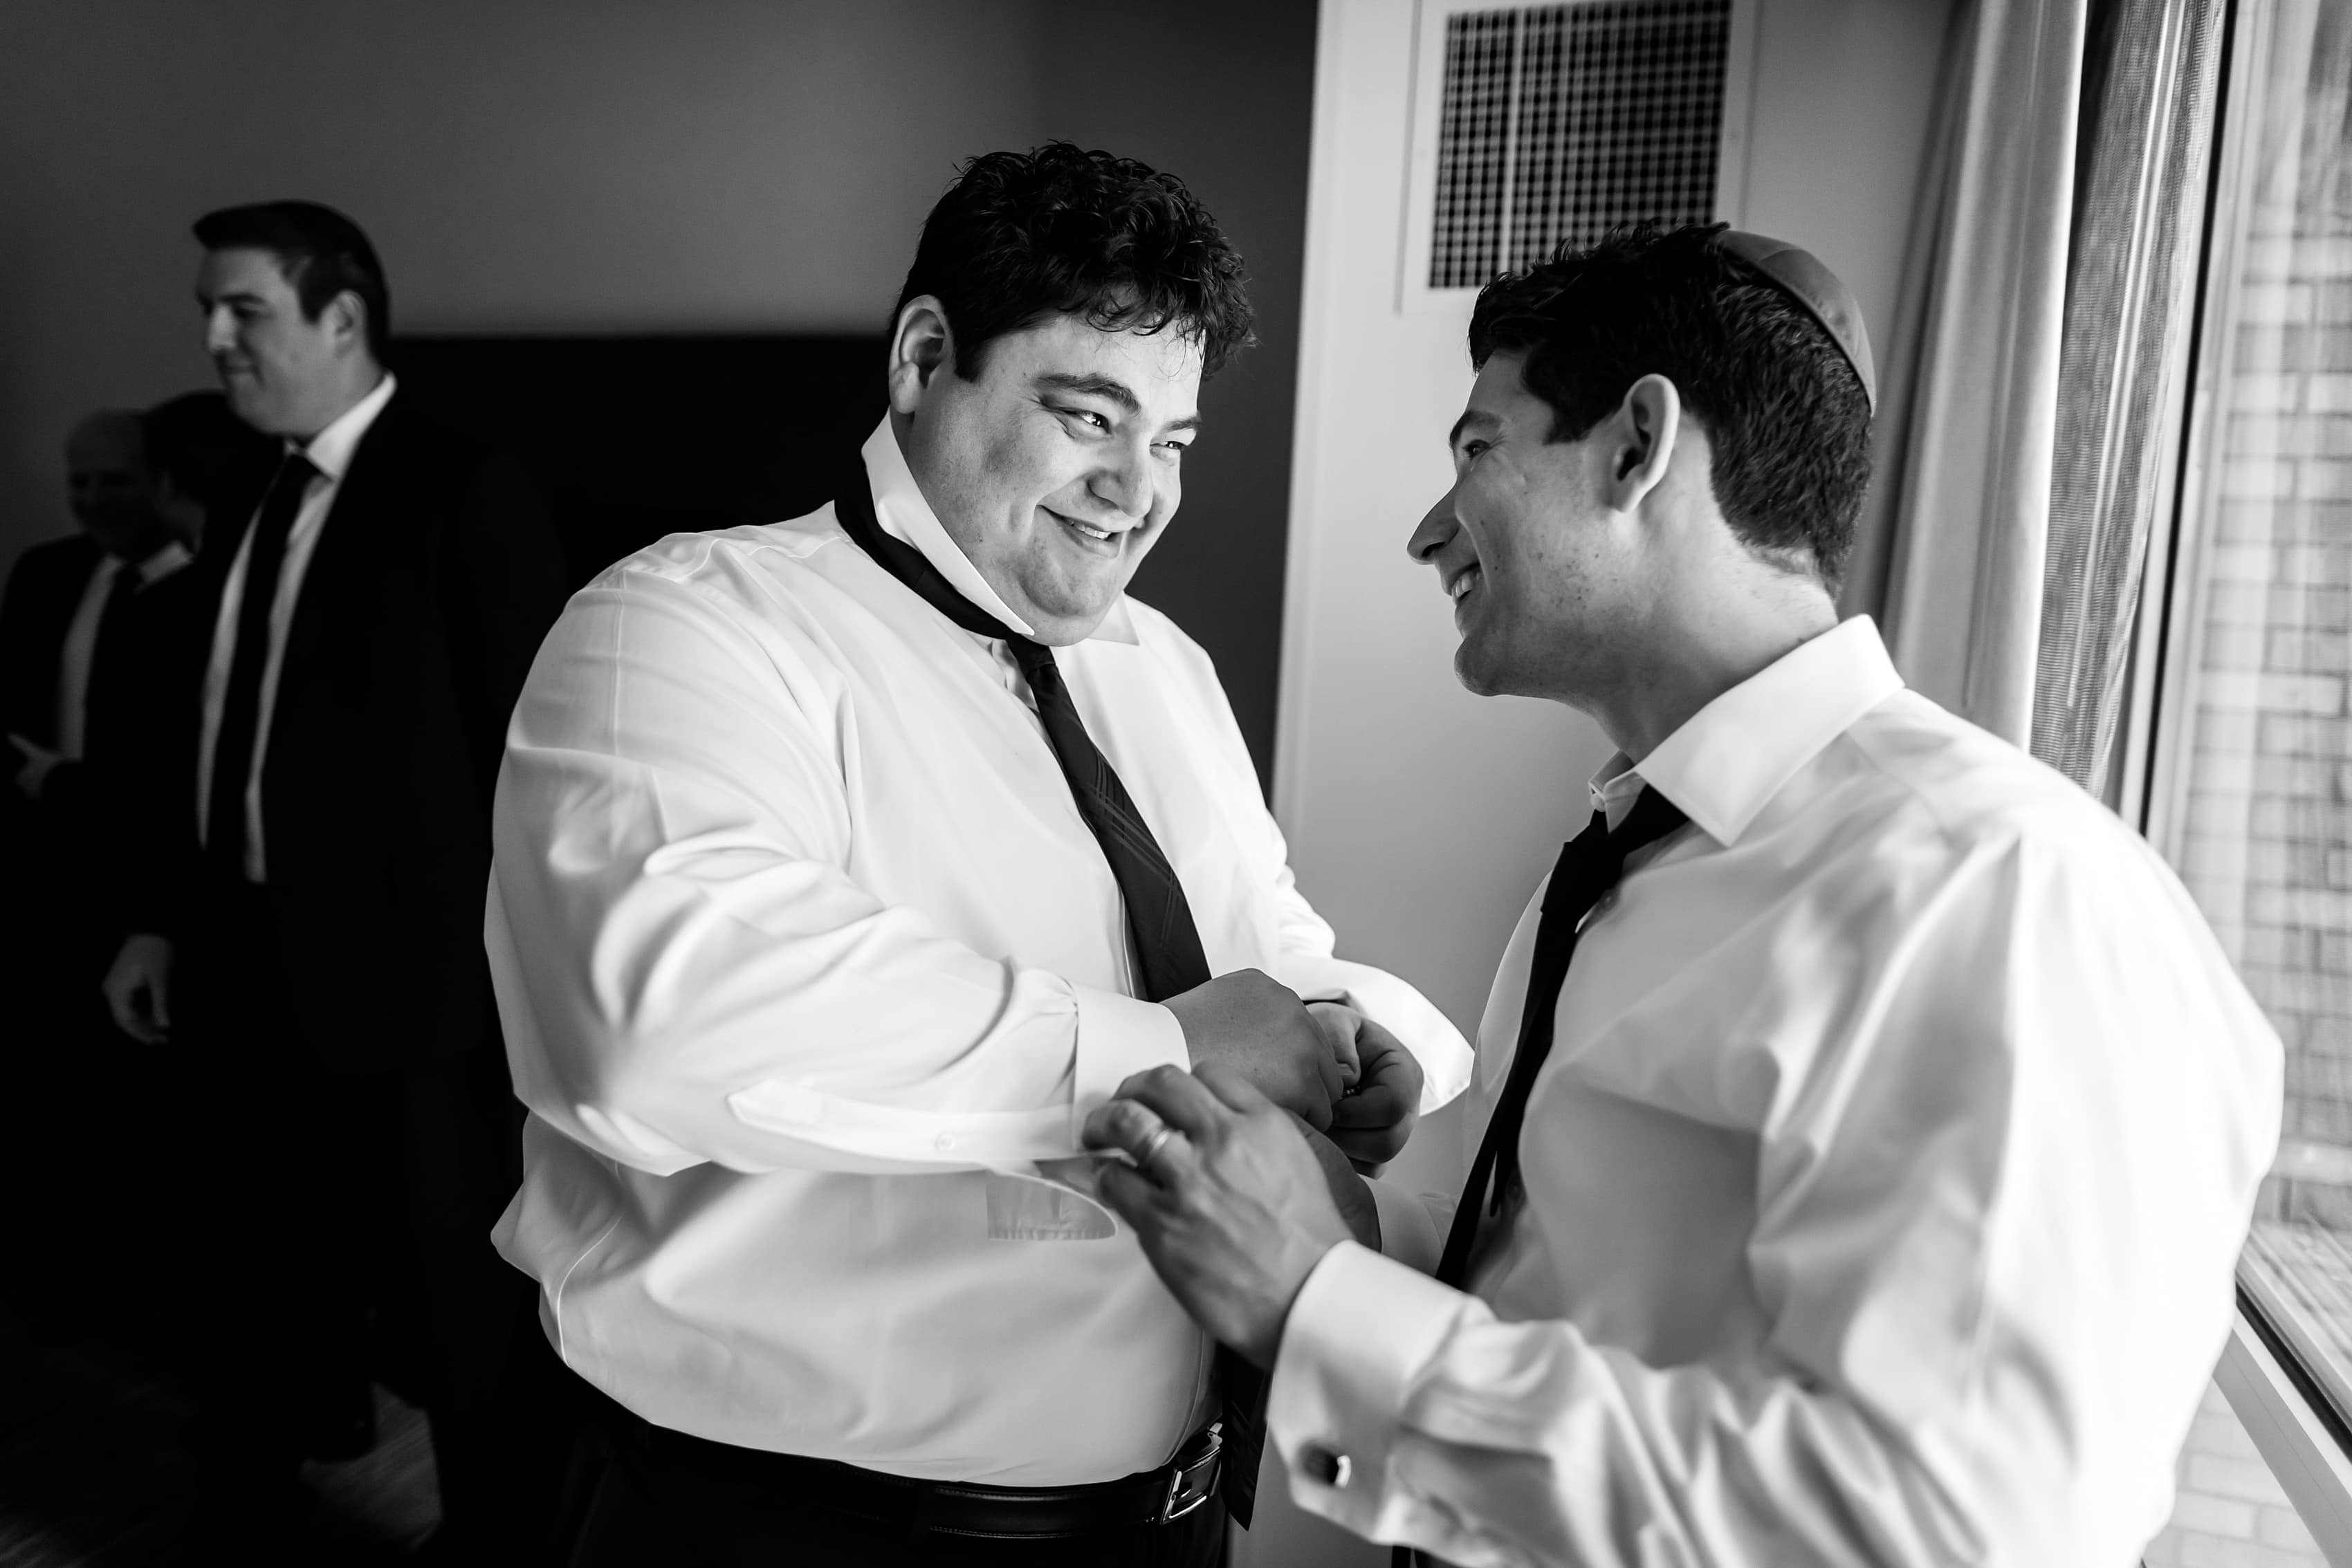 groom and best man get ready for wedding